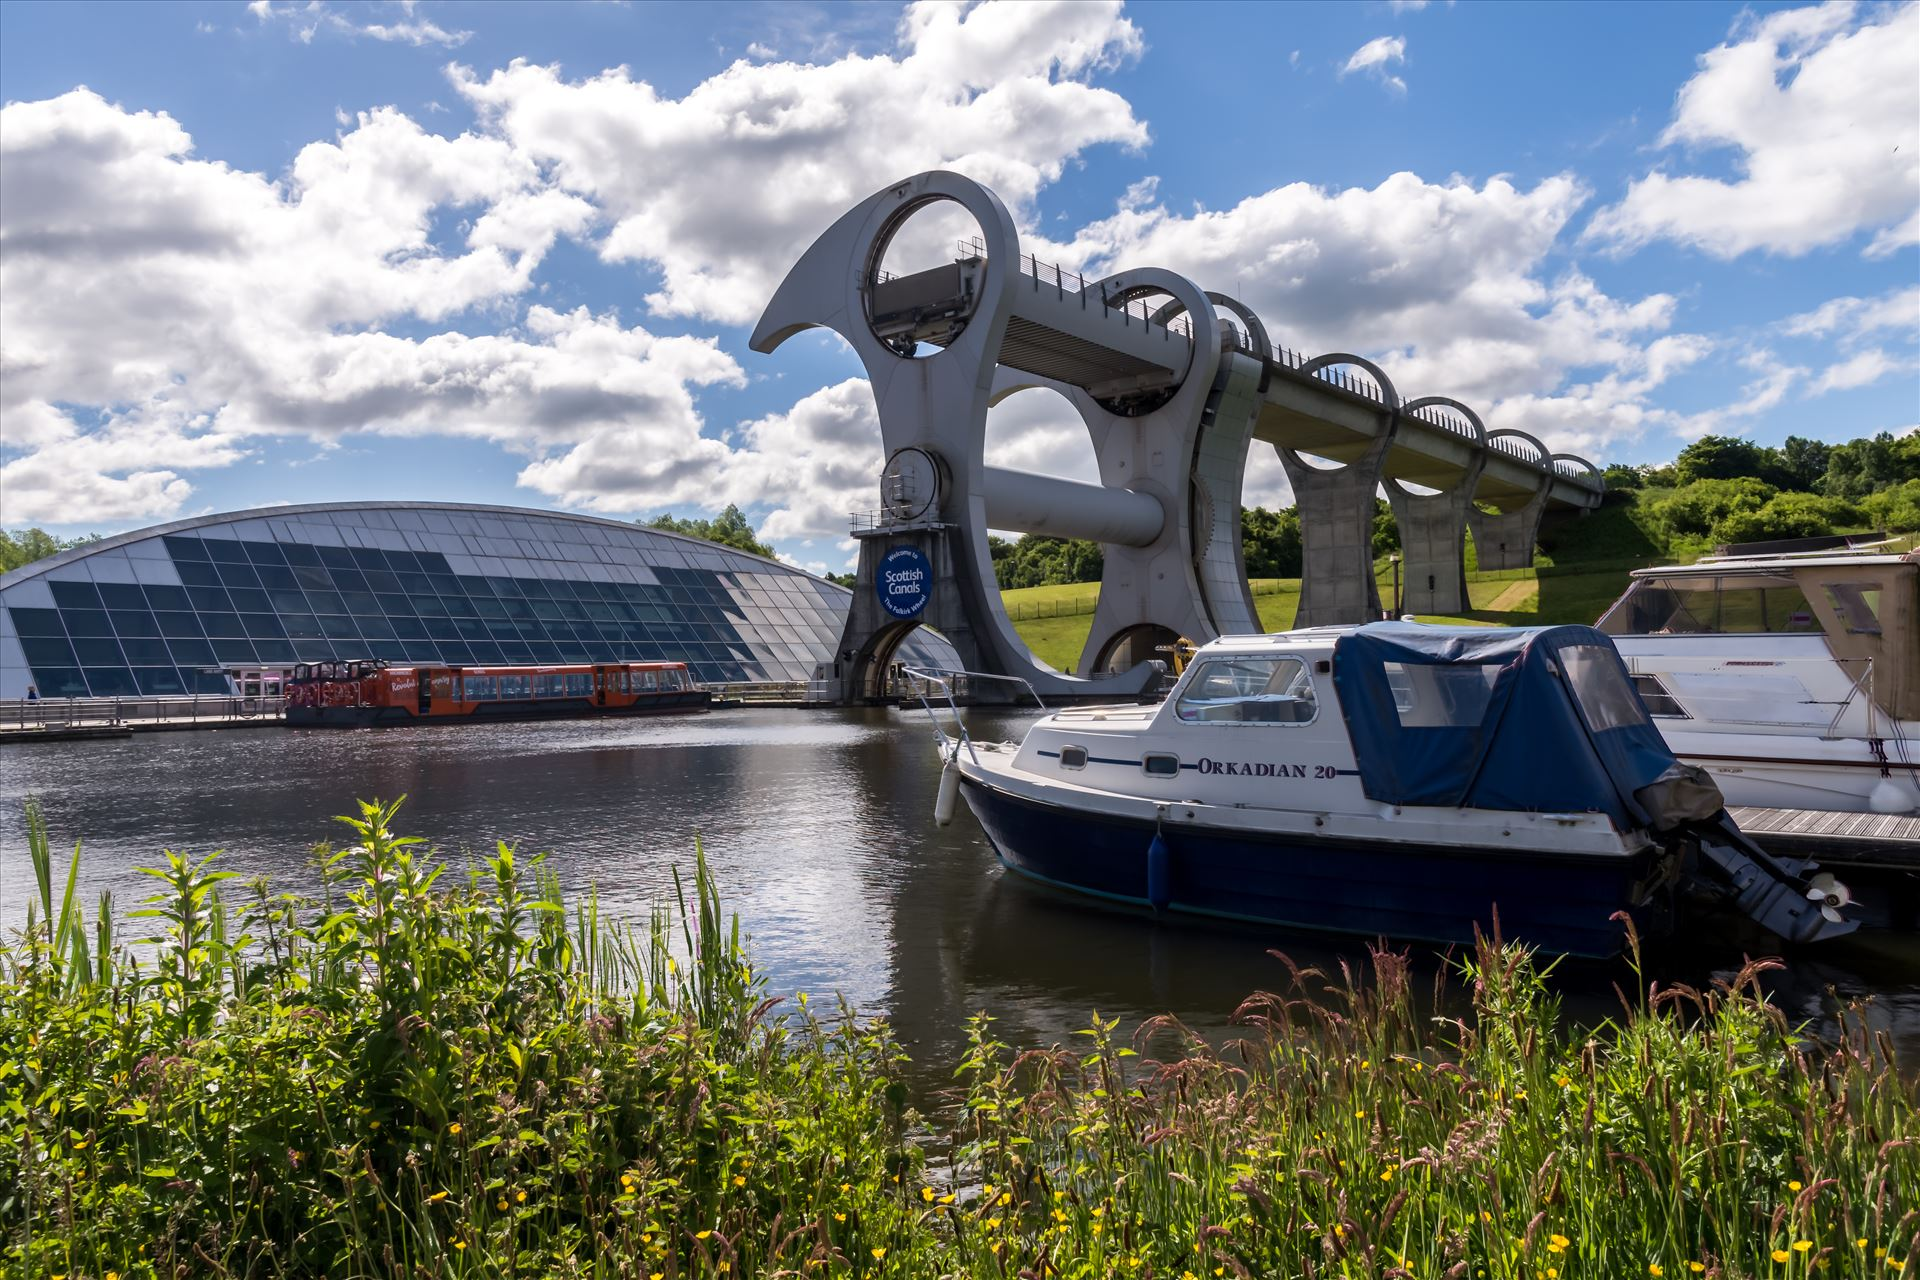 The Falkirk Wheel The Falkirk Wheel is a rotating boat lift in Scotland, connecting the Forth and Clyde Canal with the Union Canal. It opened in 2002, reconnecting the two canals for the first time since the 1930s as part of the Millennium Link project. by philreay